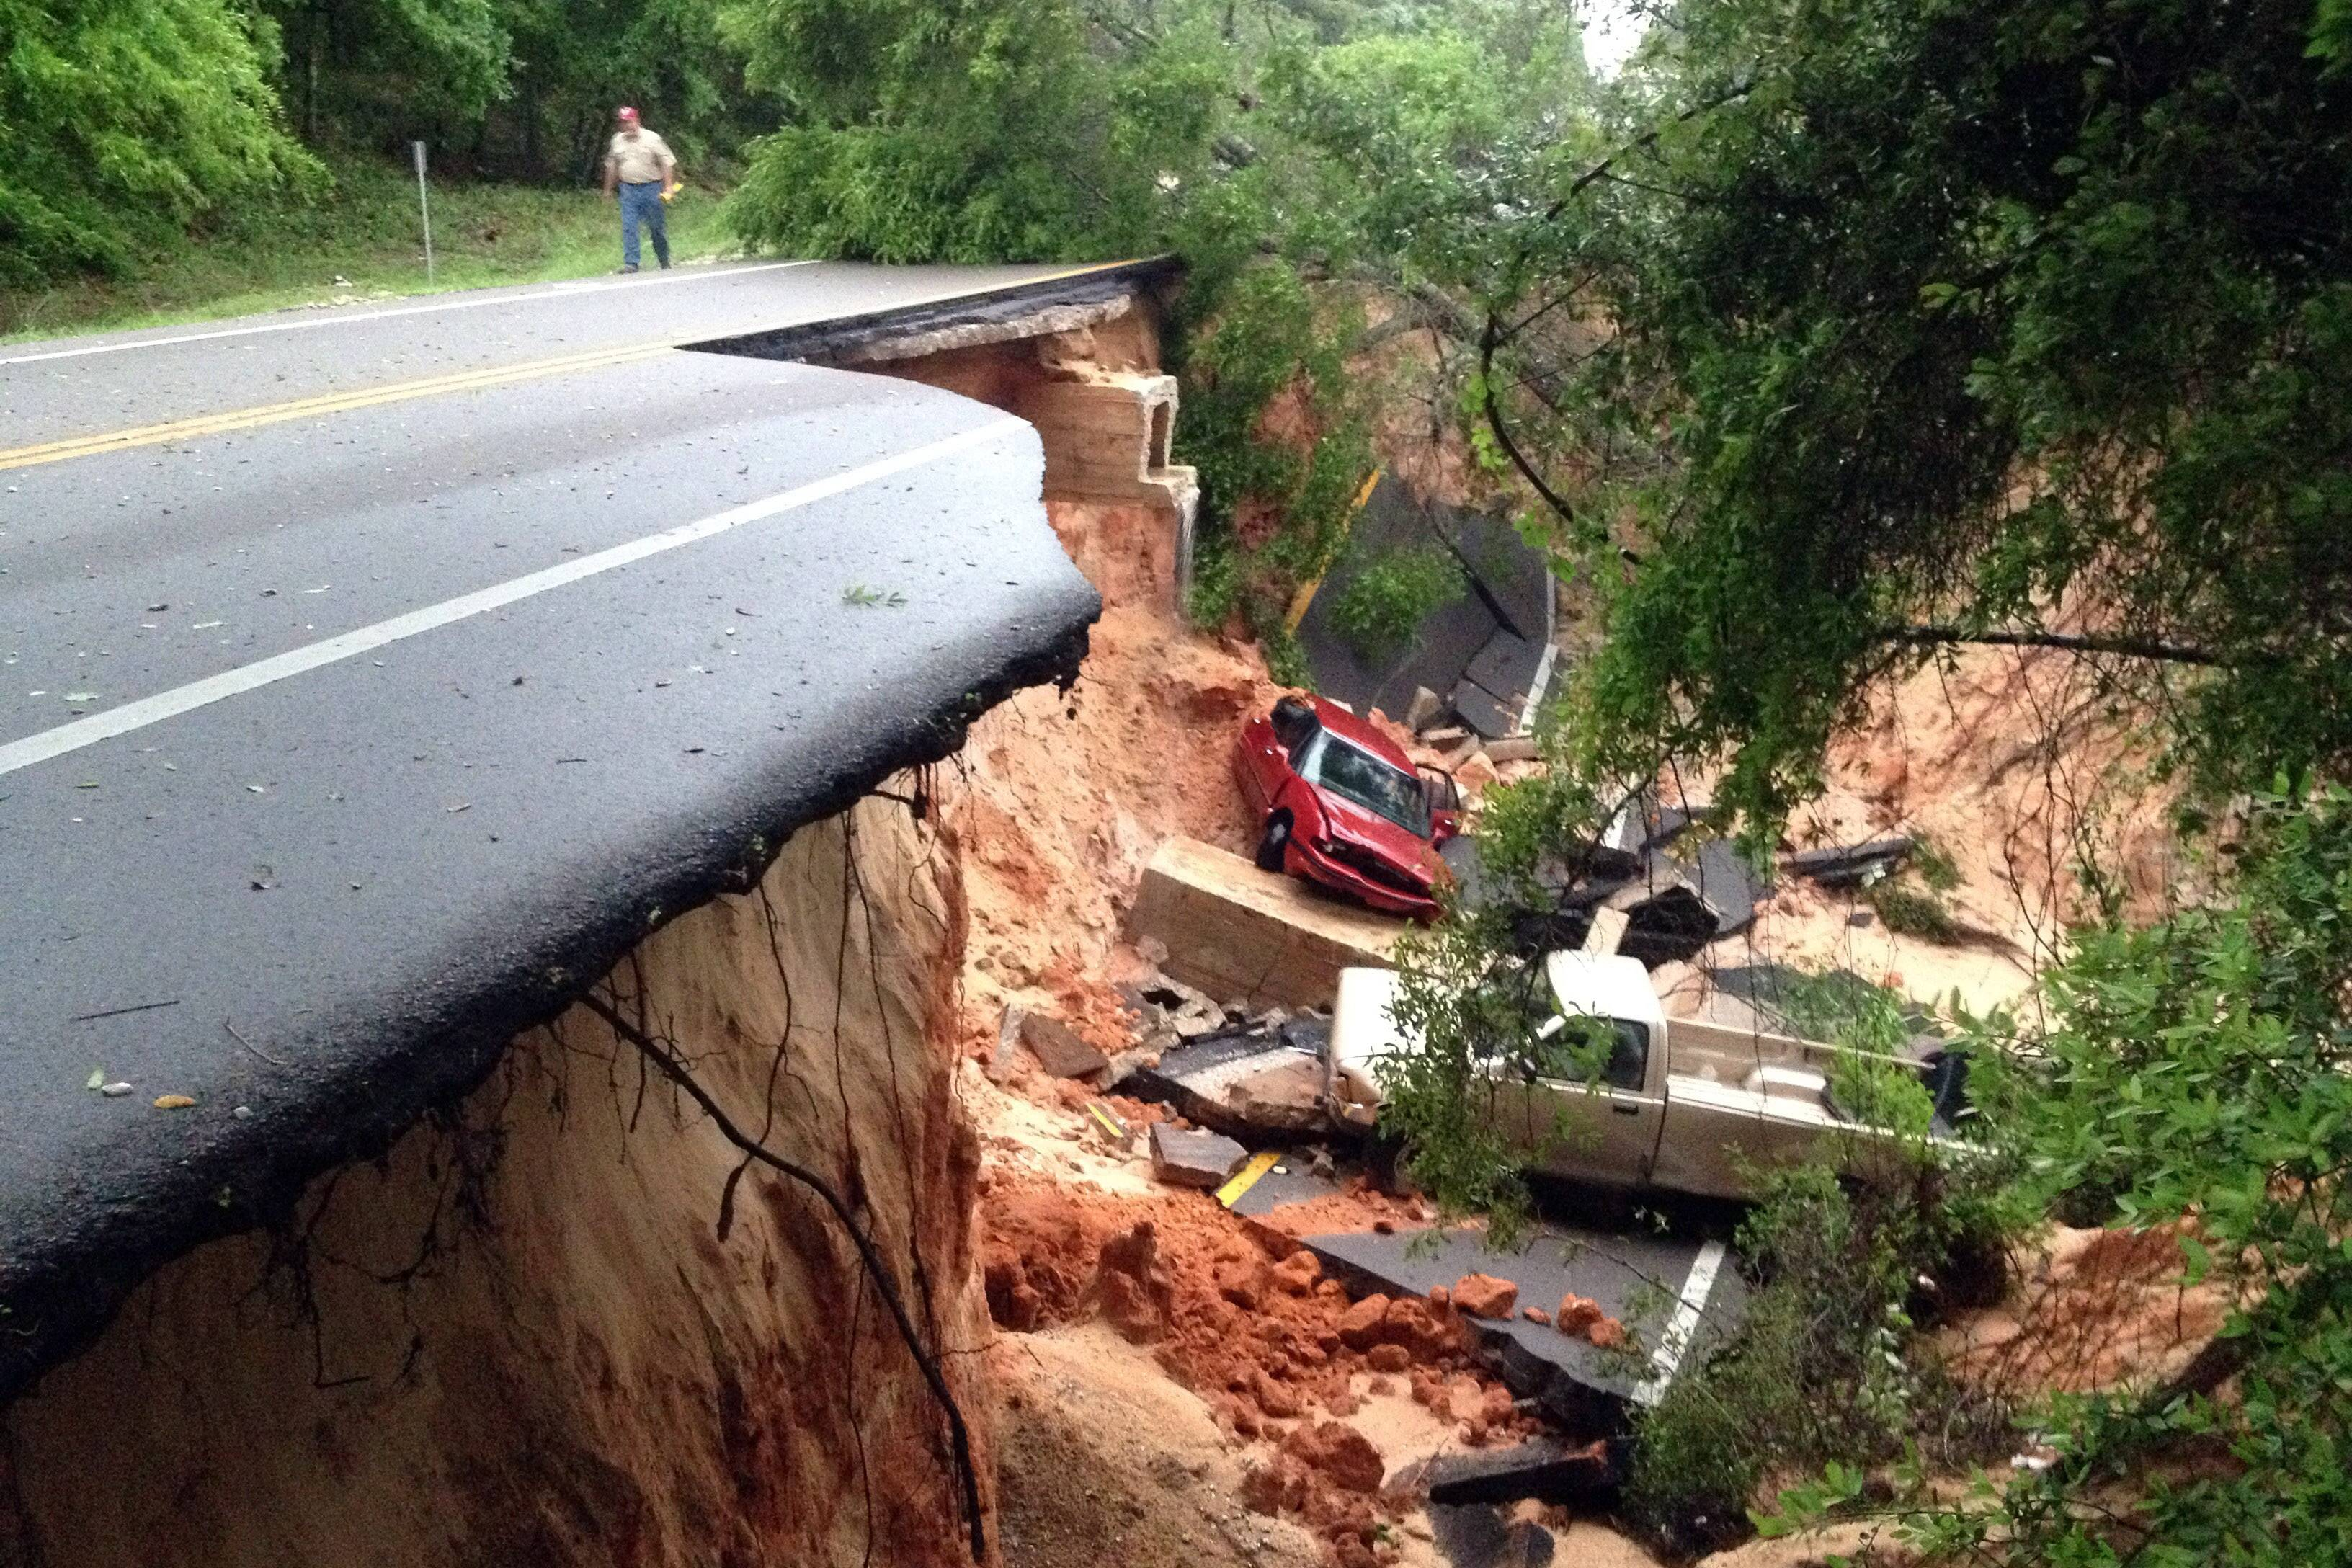 Vehicles lie at the bottom of a ravine after the Scenic Highway collapsed near Pensacola, Fla., Wednesday April 30, 2014. Nearly 2 feet of rain drenched Escambia and Santa Rosa counties in the span of about 24 hours.